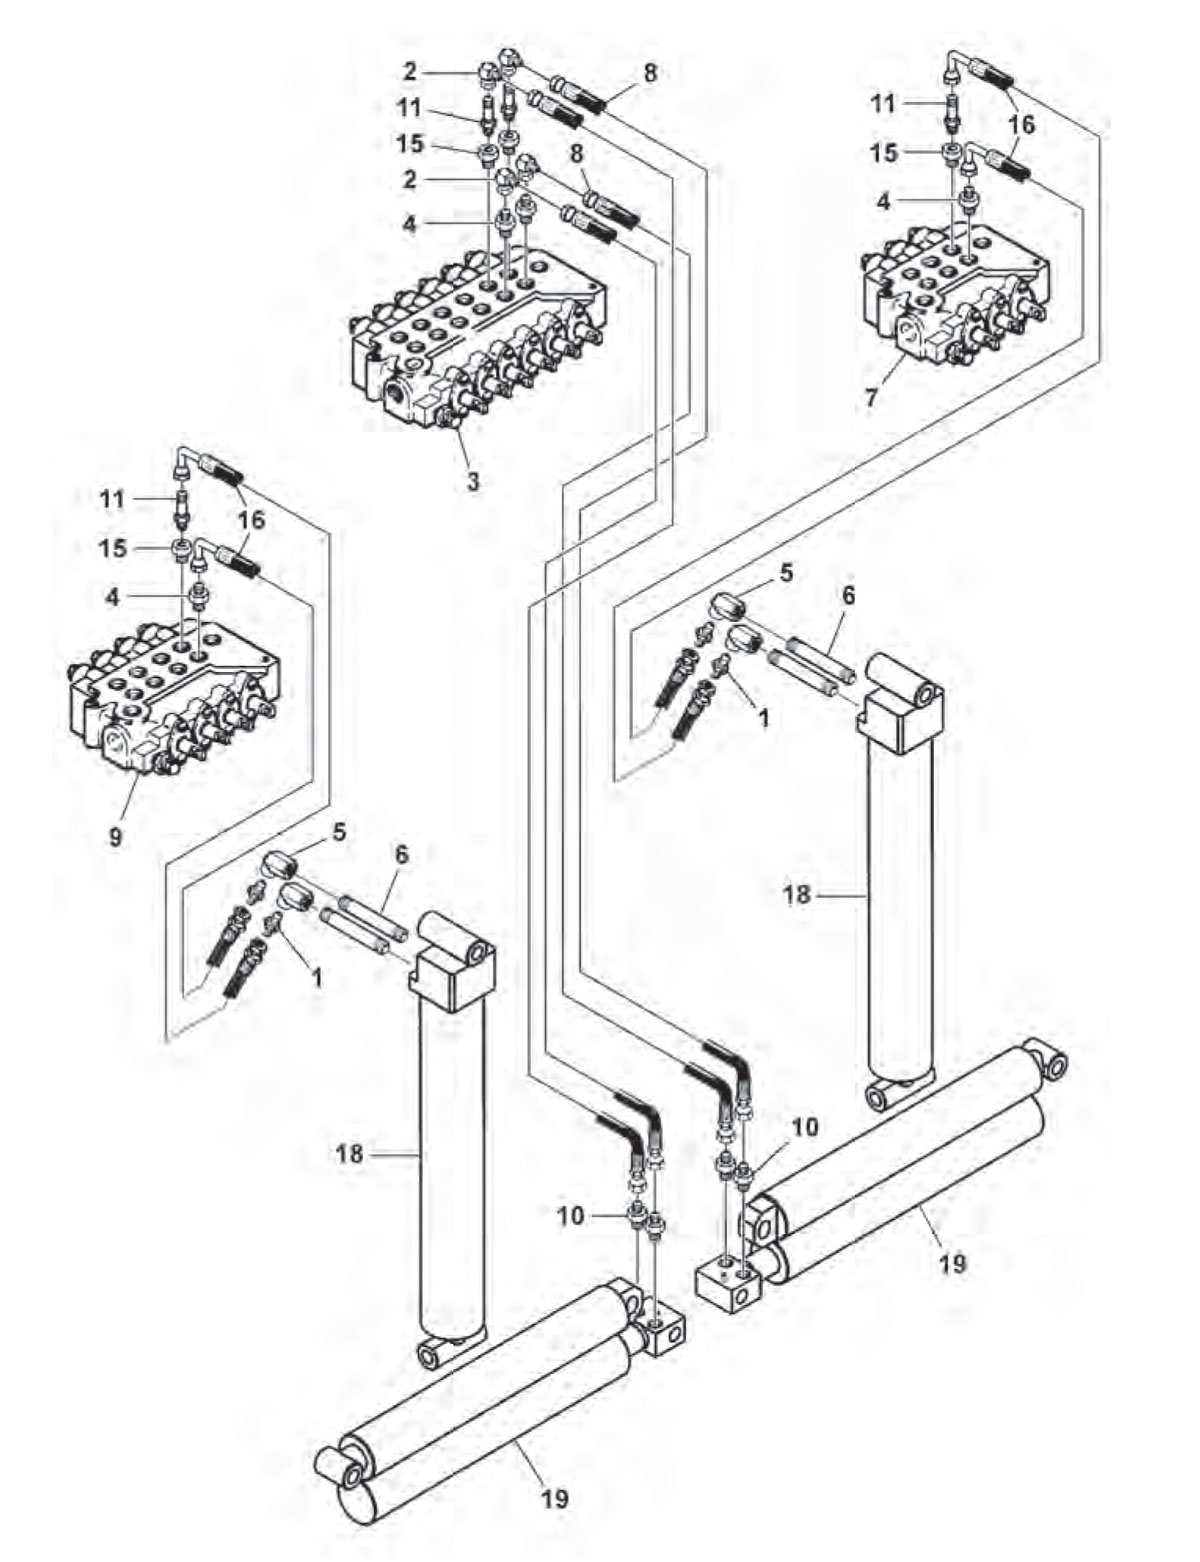 hight resolution of rear outrigger hydraulics parker hydraulic schematics diagram trailer out riggers